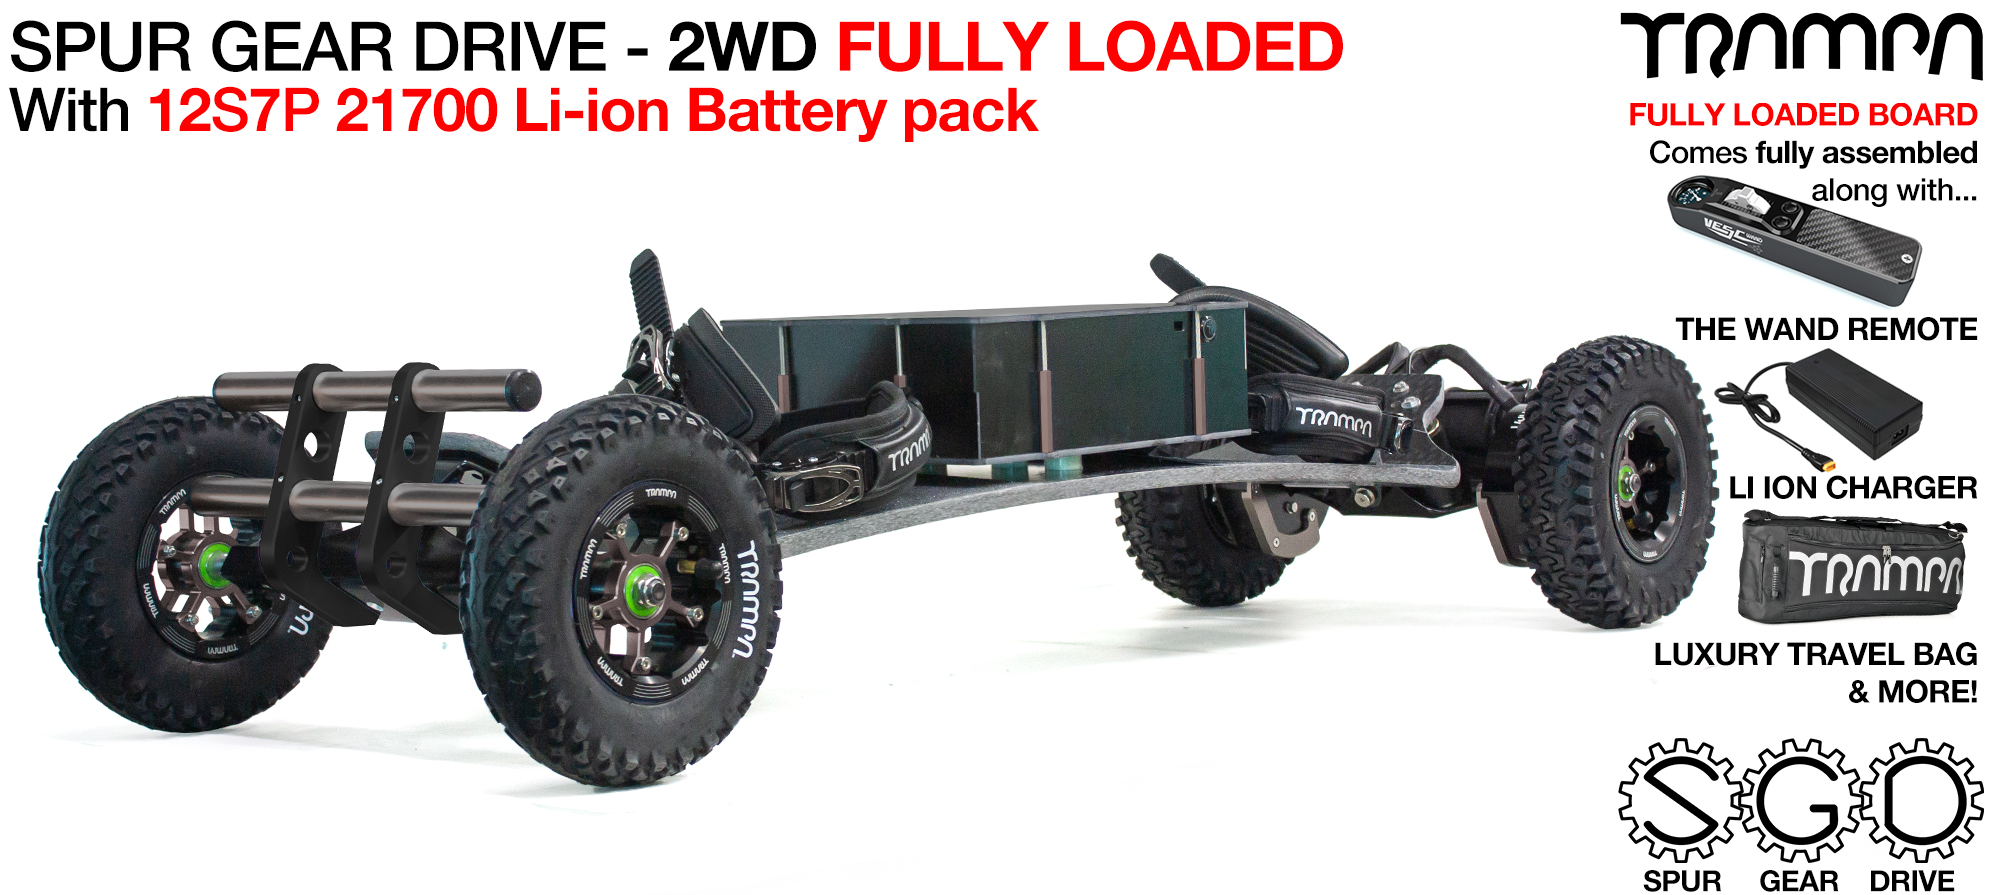 2WD SPUR GEAR DRIVE Electric Mountainboard - FULLY LOADED BigBoi Deck with 21700 Cell Pack, The WAND, a 12A Charger & Bull Bars all included, Shipped fully assembled in a Luxury Travel Bag & as standard!!